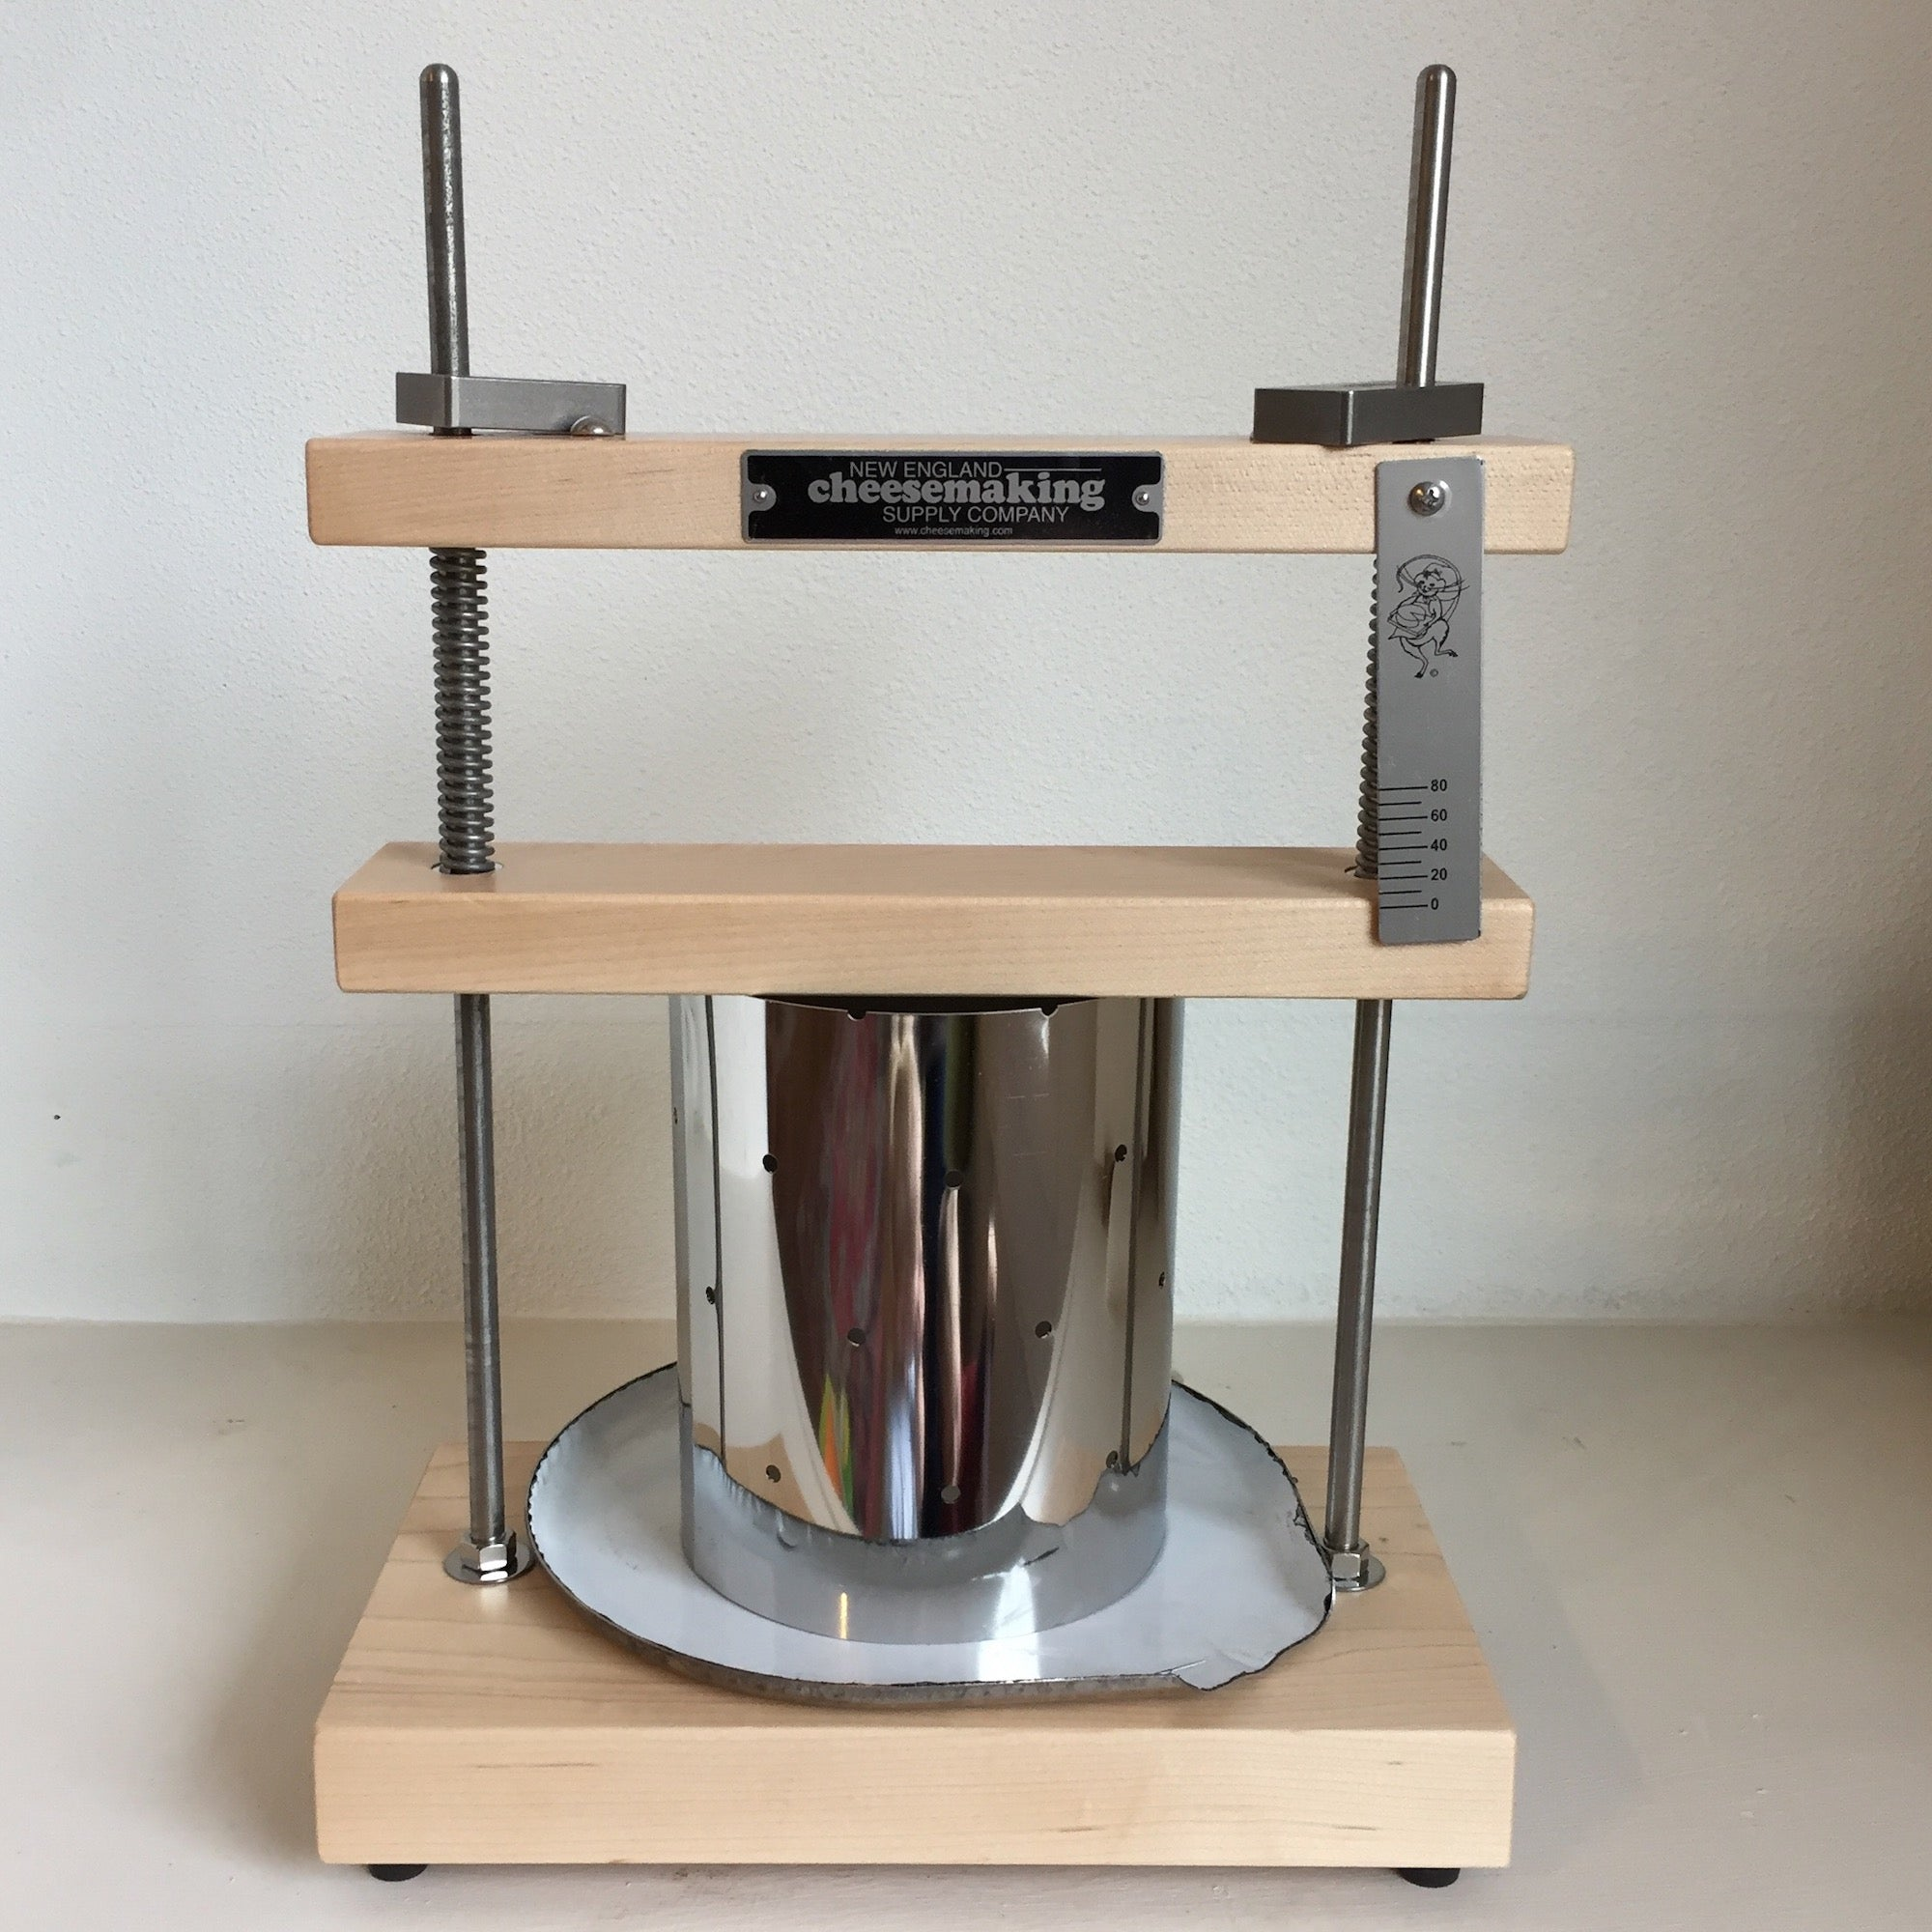 Deluxe Cheese Press (with three included cultures)